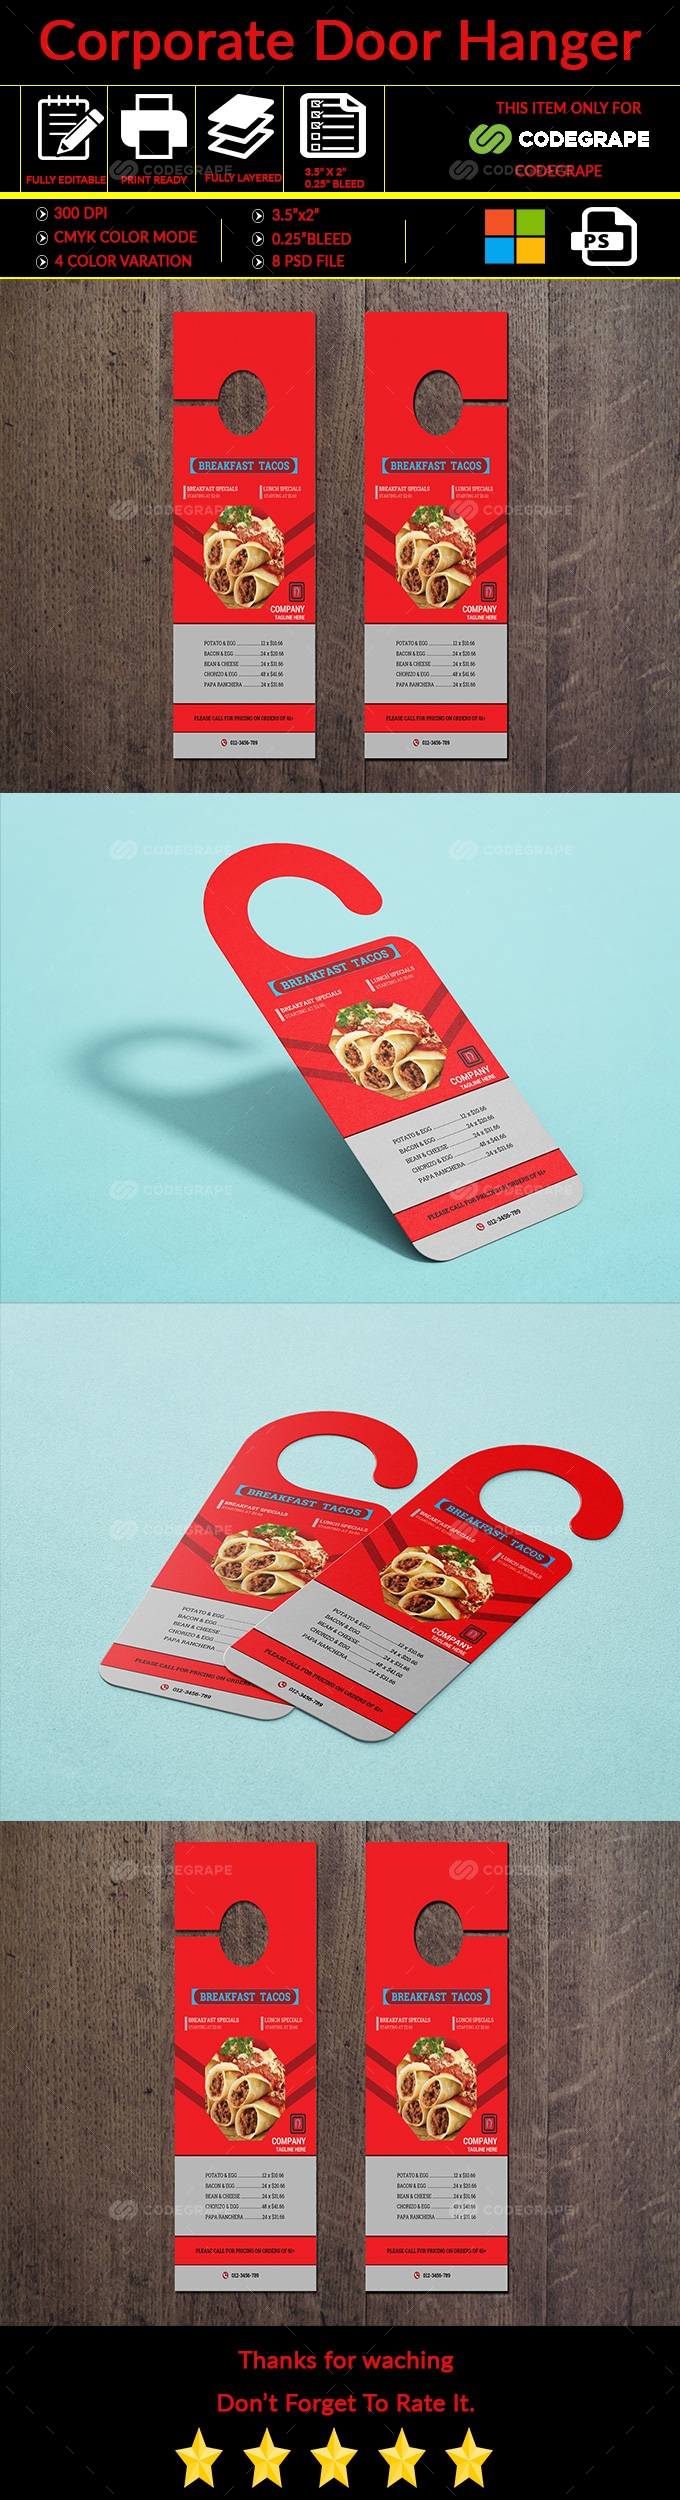 Corporate Door Hanger